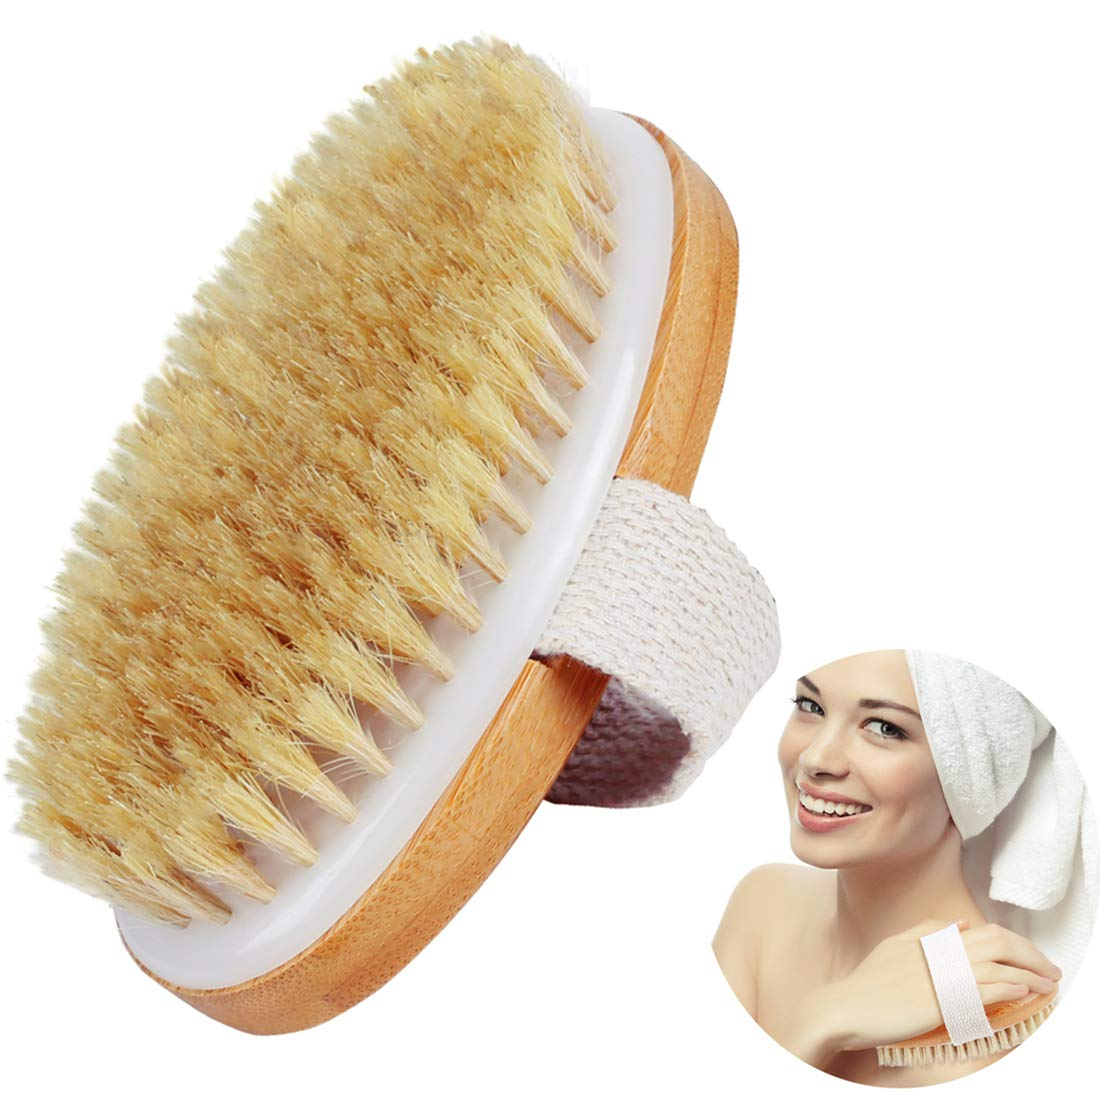 Dry Body Brush-100% Nature Boar Bristles Bamboo Shower Bath Brushes for Exfoliating - Help your Cellulite Reduction Body Massage Glowing Skin -Improves Lymphatic Functions,Sleep Improvement-by Ecobambu